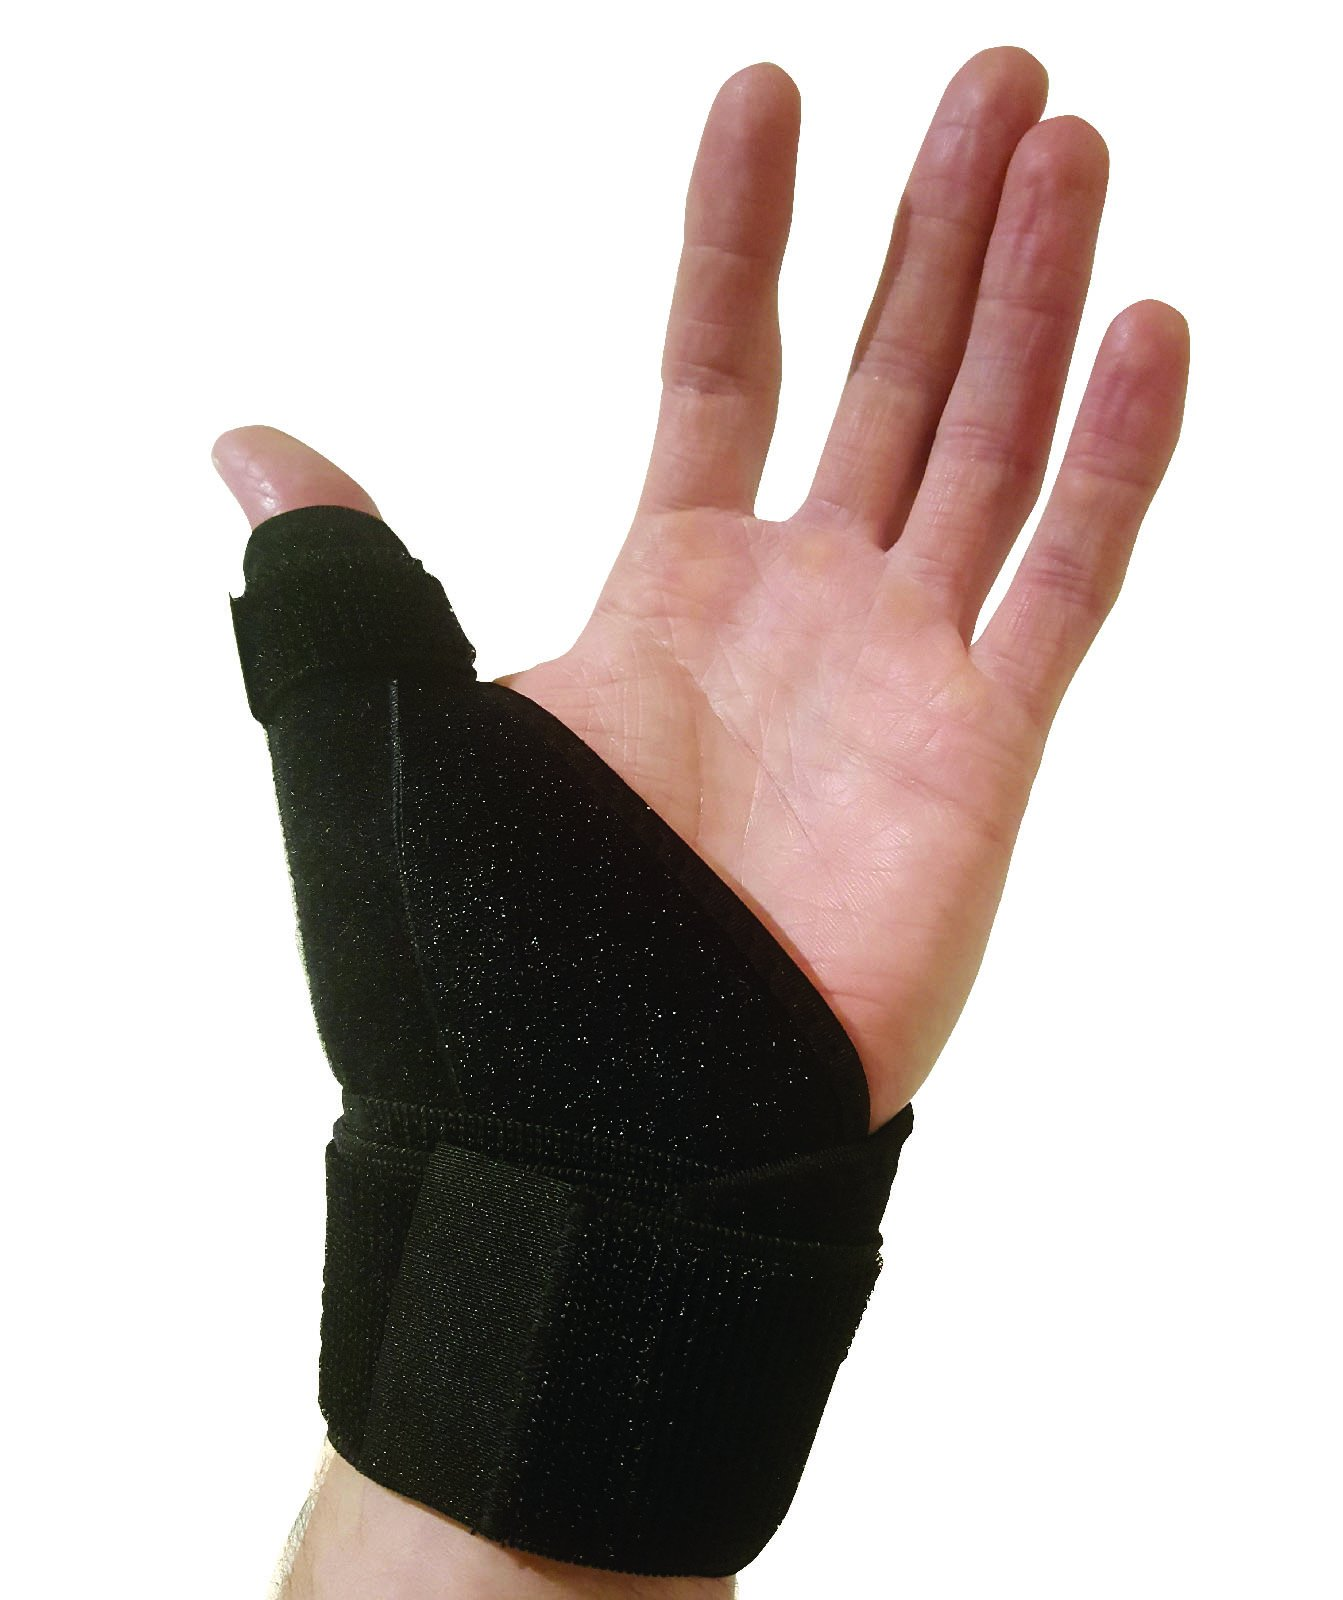 Thumb Splint and Wrist Brace – Reduce Carpal Tunnel Syndrome, Arthritis or Tendonitis Joint Pain Relief. Thumb Brace Fits Left or Right Hands. Ideal Thumb Spica Support or Immobilizer for Men or Women